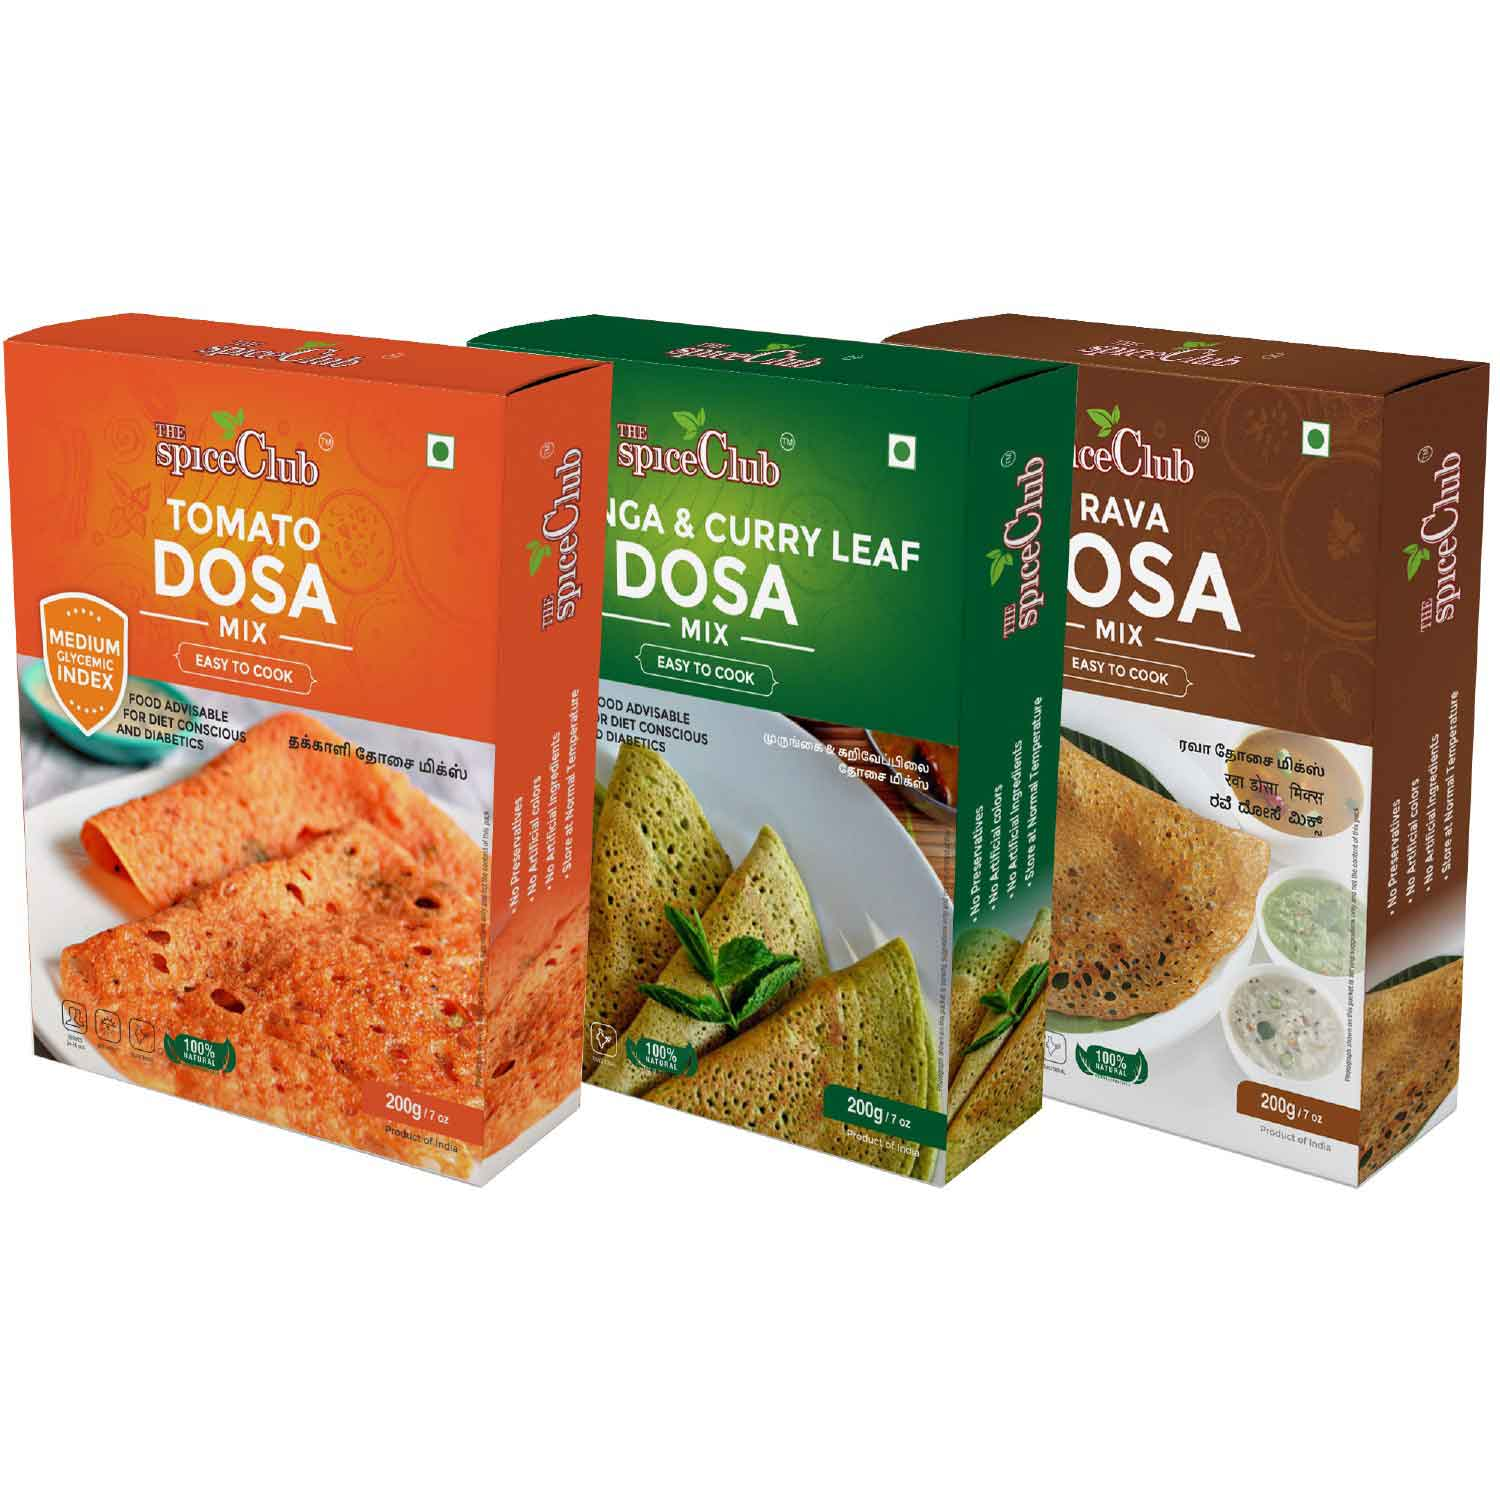 Moringa & Curry Leaf Dosa Mix 200g + Tomato Dosa with Brown Rice Mix 200g + Rava Dosa Mix 200g- No Preservatives, 100% Natural